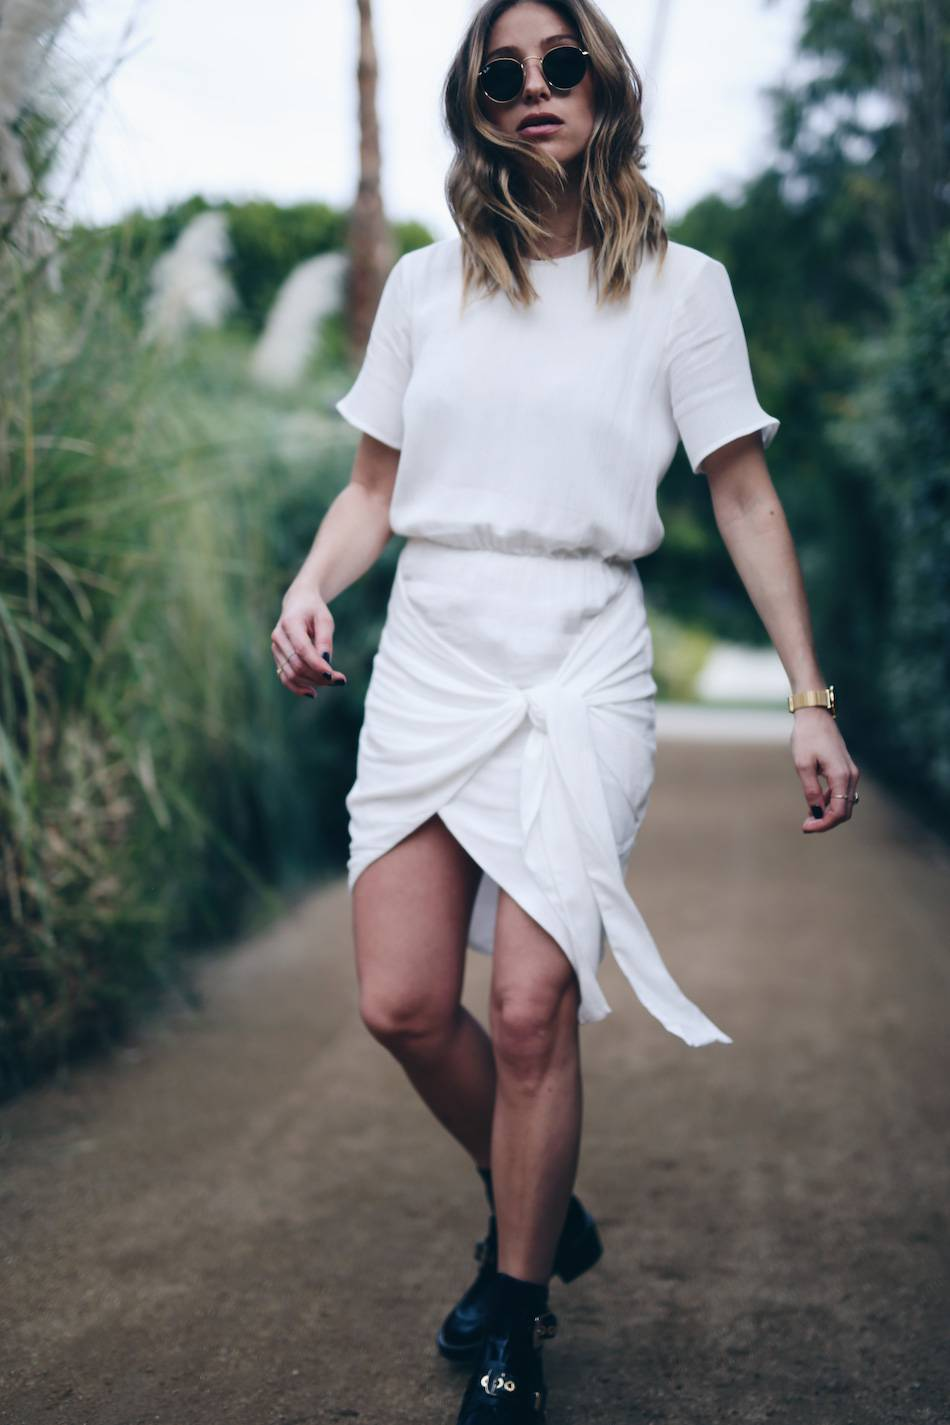 Style-and-beauty-blogger-Jill-Lansky-of-The-August-Diaries-in-white-wrap-Stylestalker-dress-Balenciaga-boots-Dagne-Dover-bag-Cluse-gold-watch-at-the-Parker-Palm-Springs